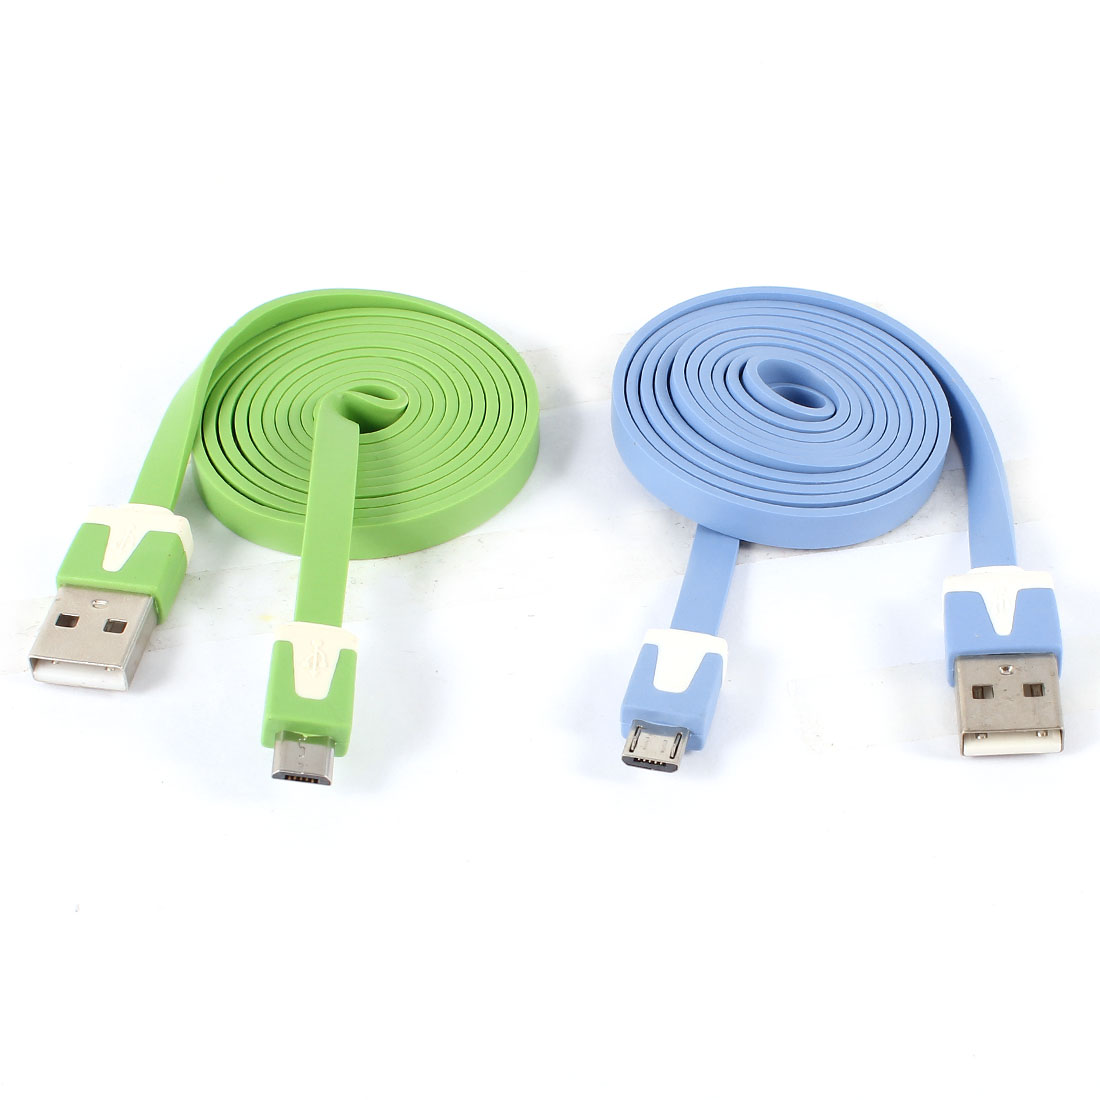 Unique Bargains 2pcs Green Blue USB2.0 A to Micro B 5Pin M/M Flat Data Charging Cable 1M Long